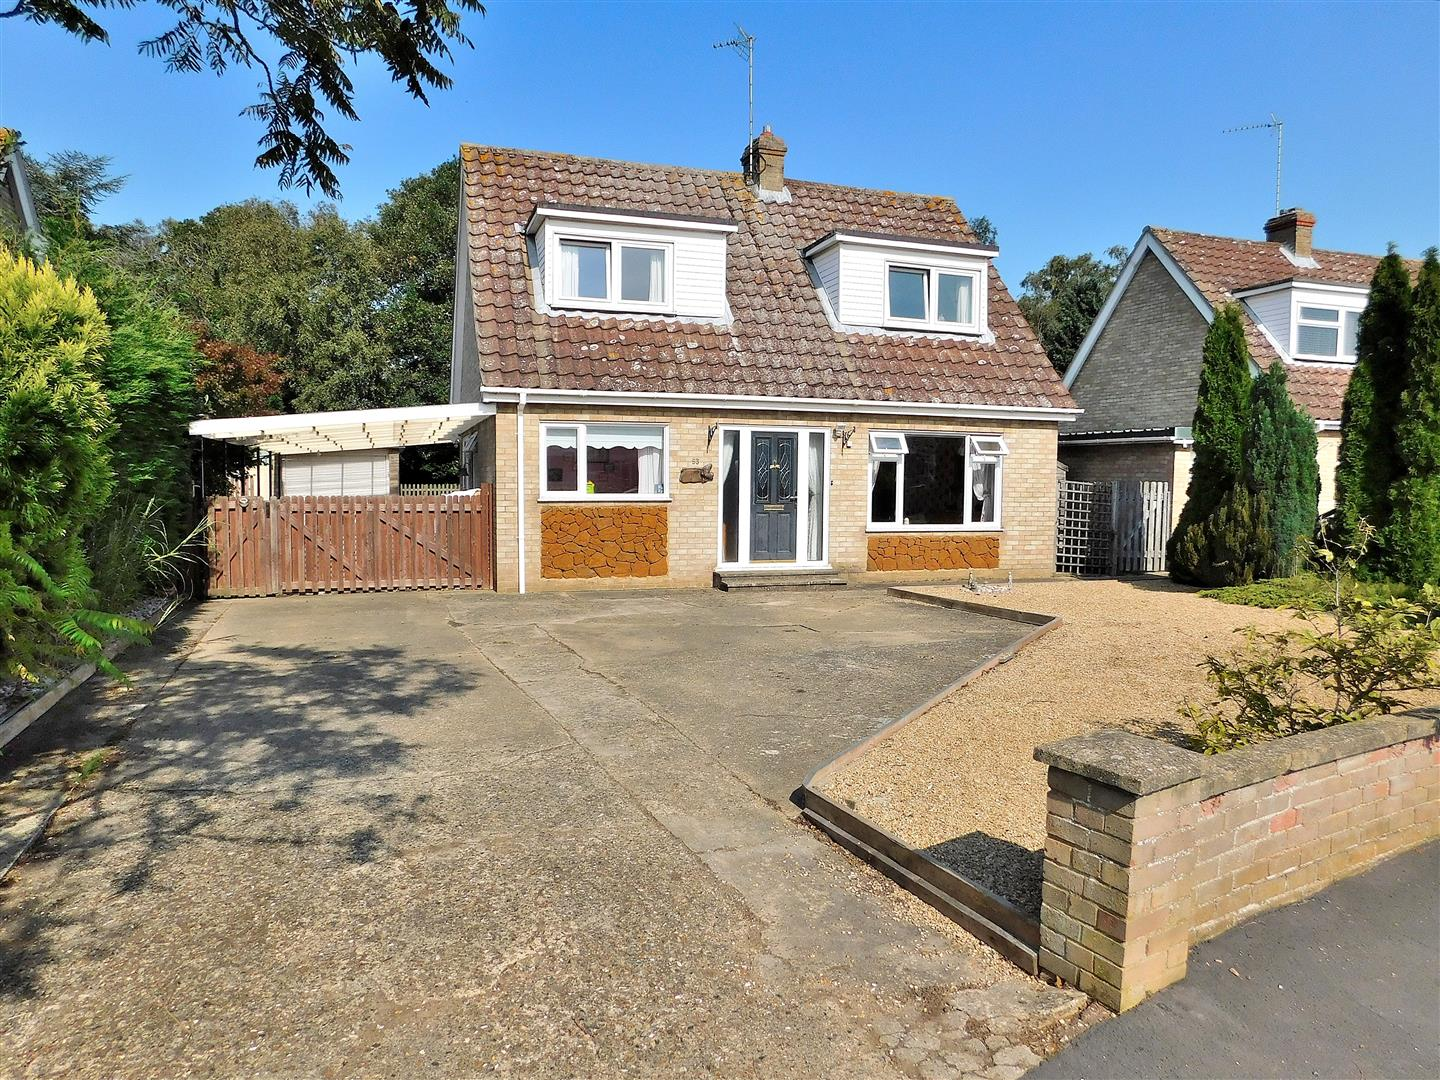 3 bed detached bungalow for sale in King's Lynn, PE31 6PT  - Property Image 1